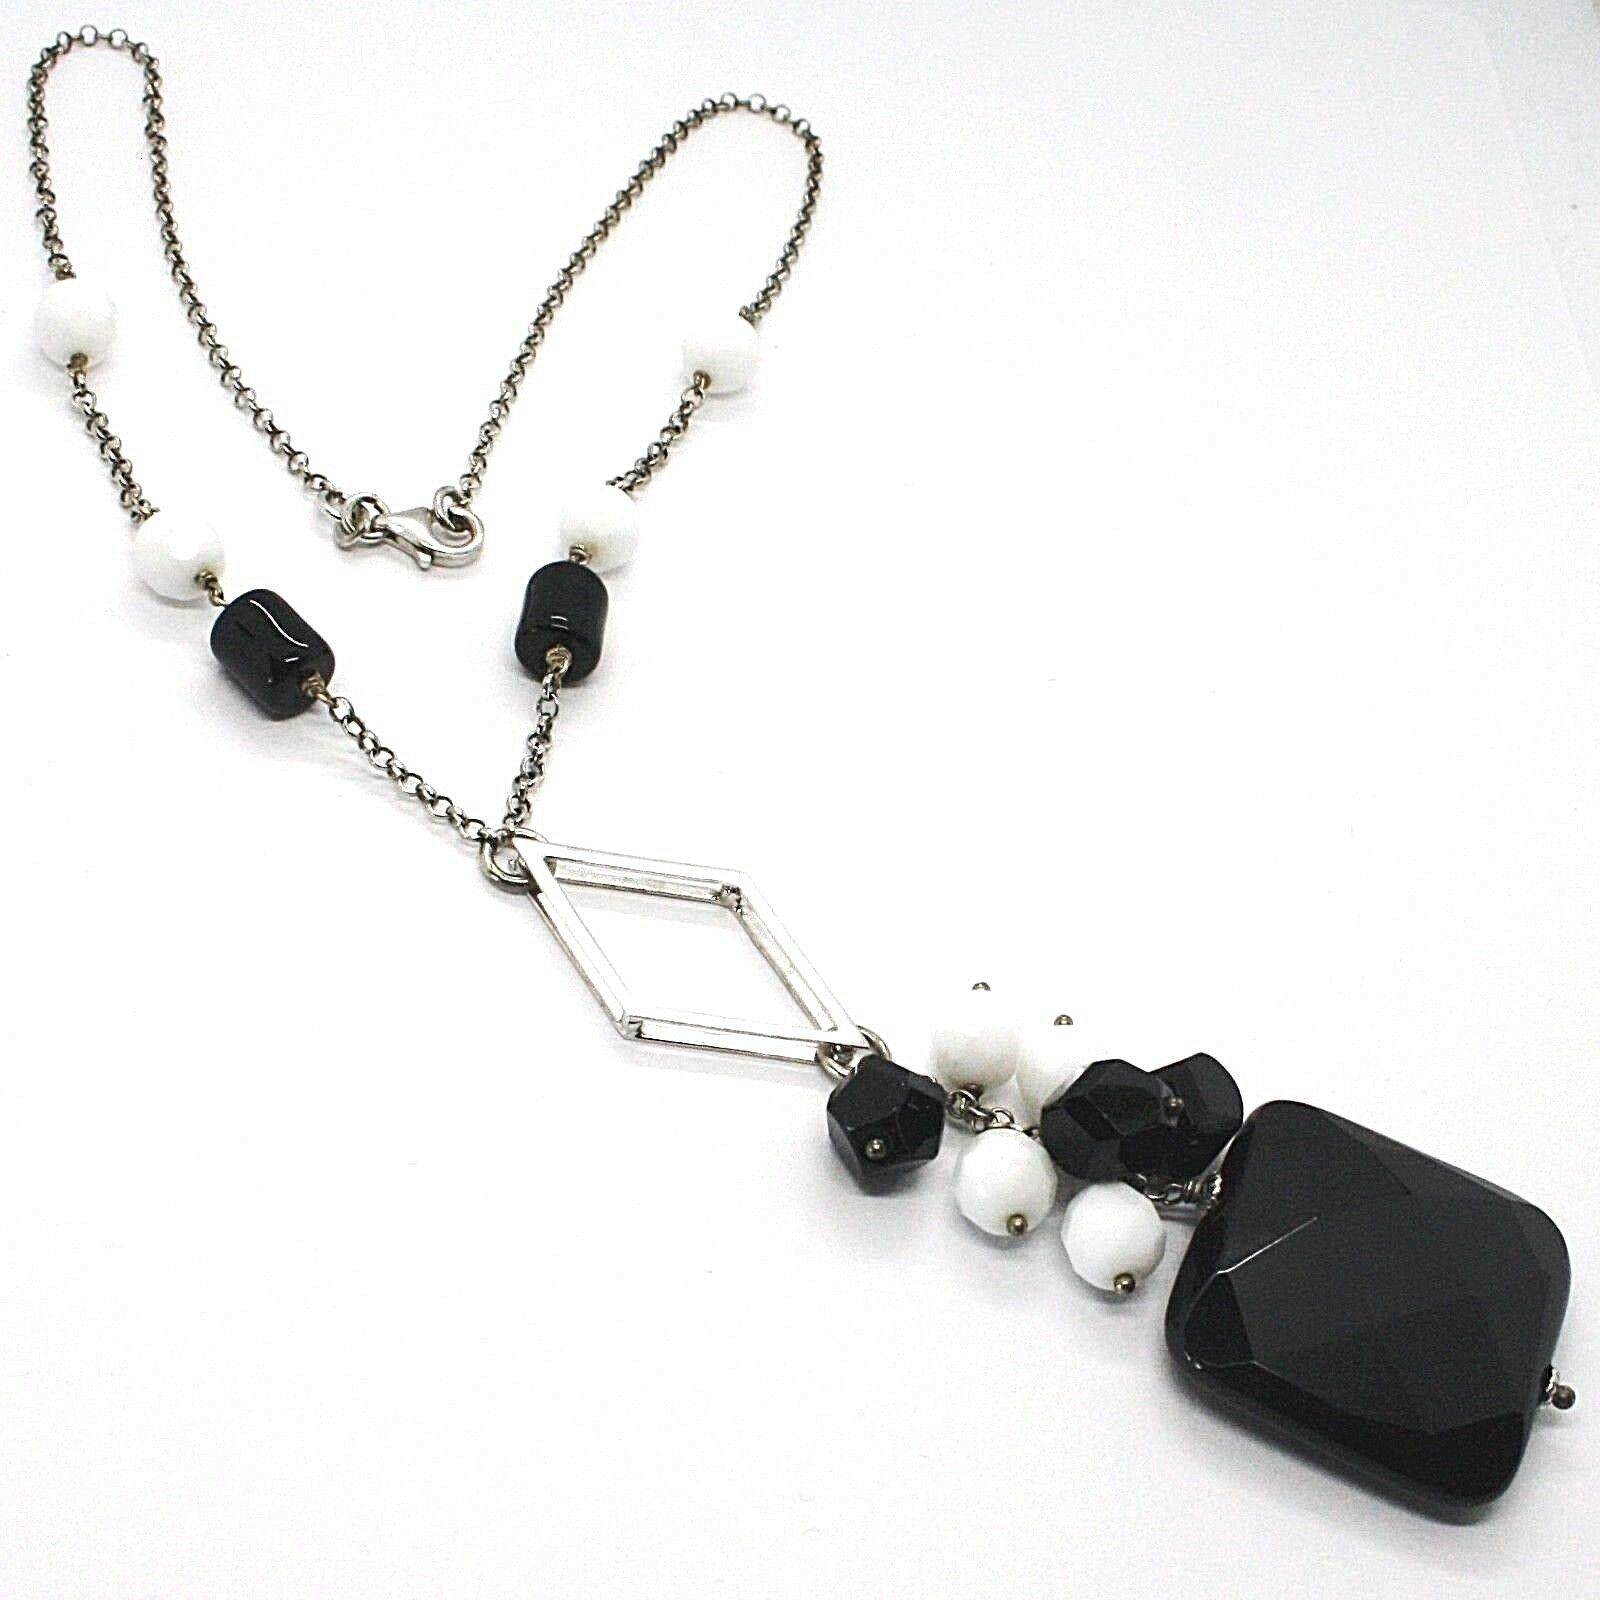 Necklace Silver 925, Onyx Black, Pendant Bunch, 45 cm, Chain Rolo '